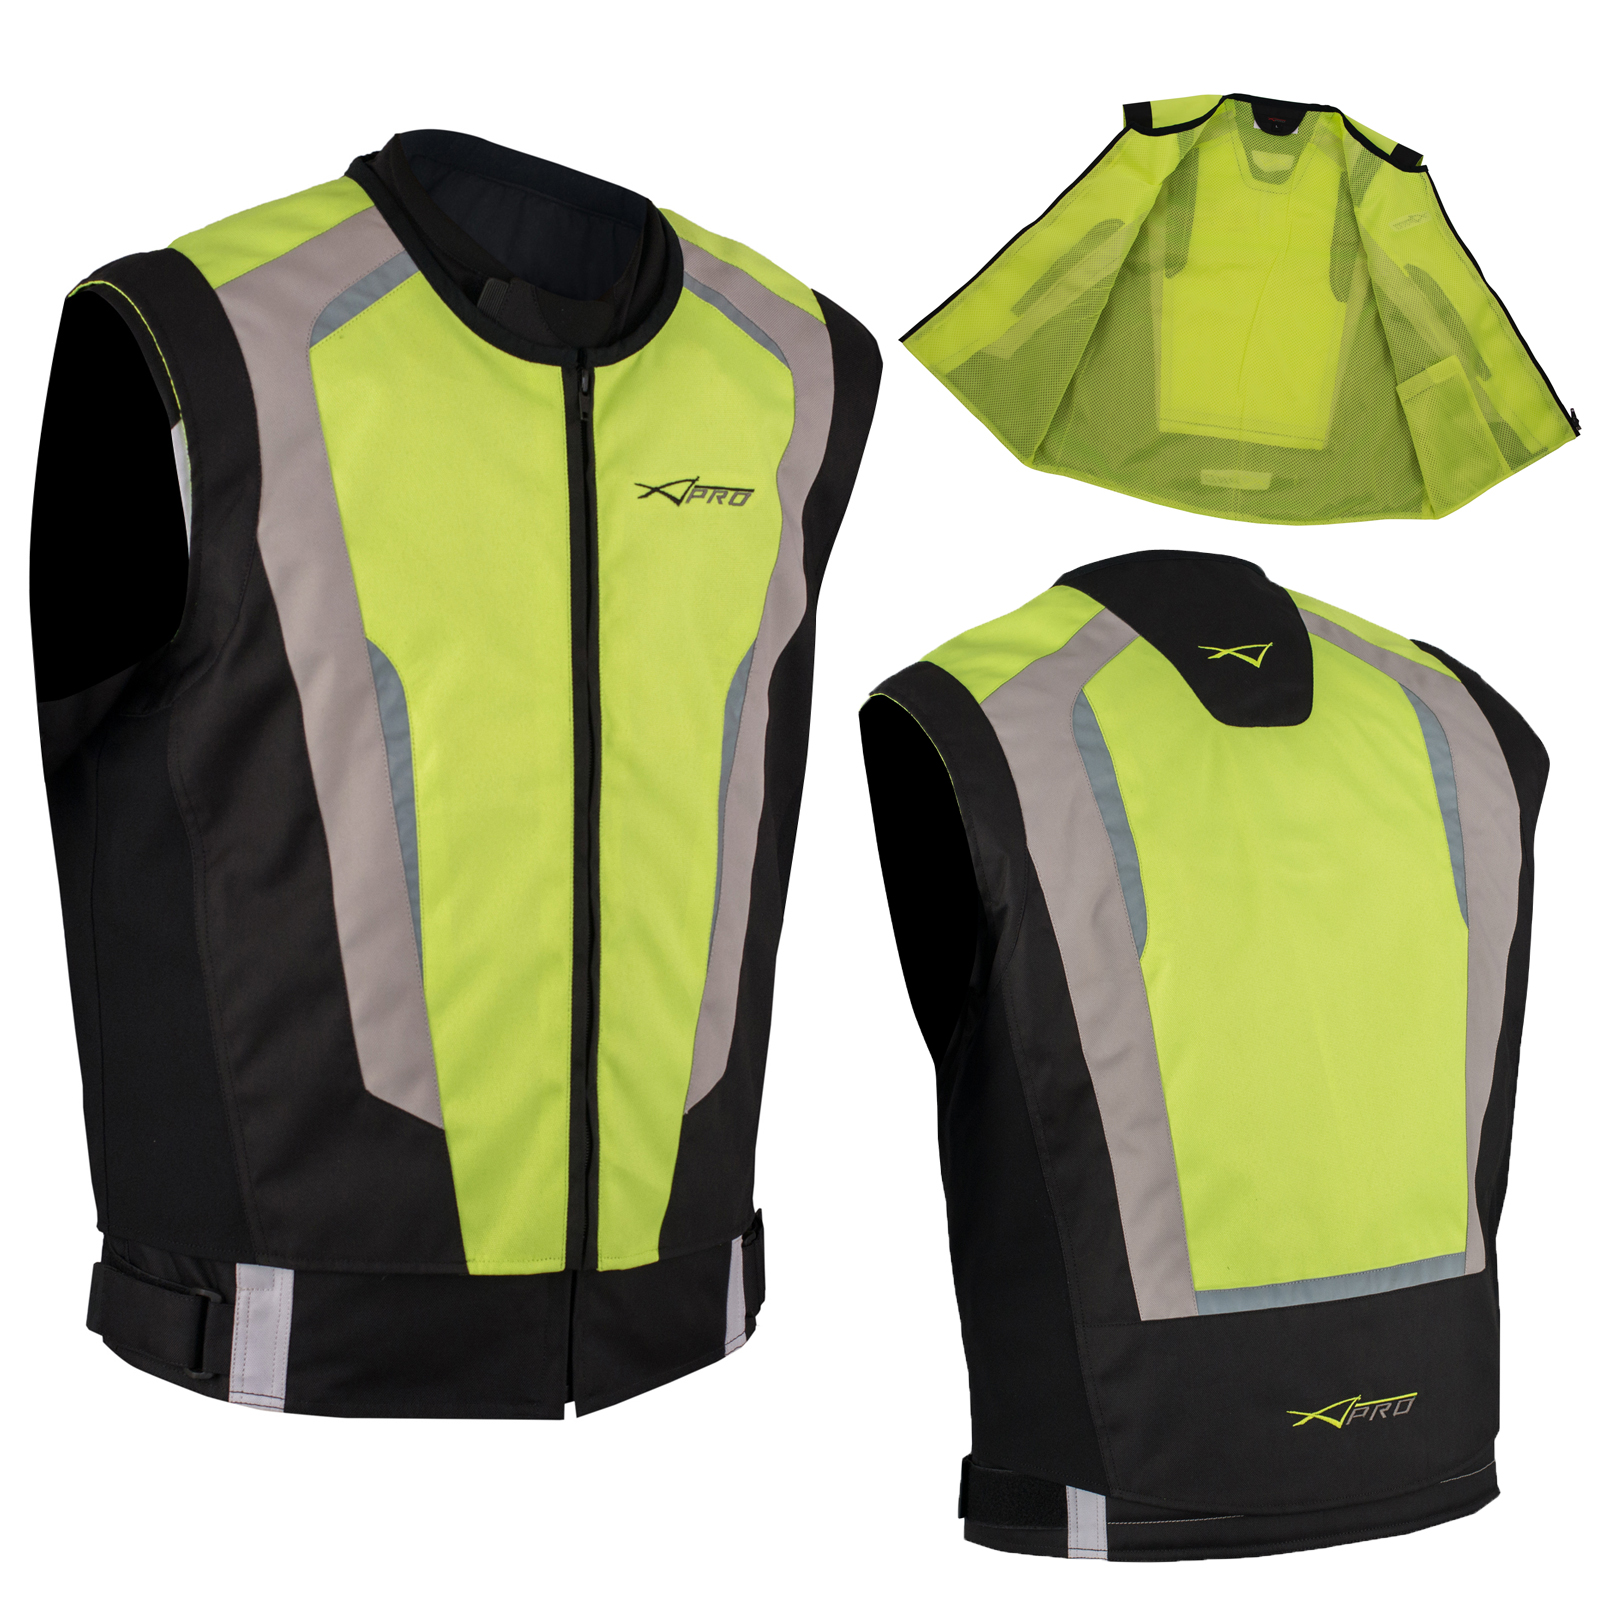 gilet securit moto v lo haute visibilit s curt vest auto fluo l ebay. Black Bedroom Furniture Sets. Home Design Ideas